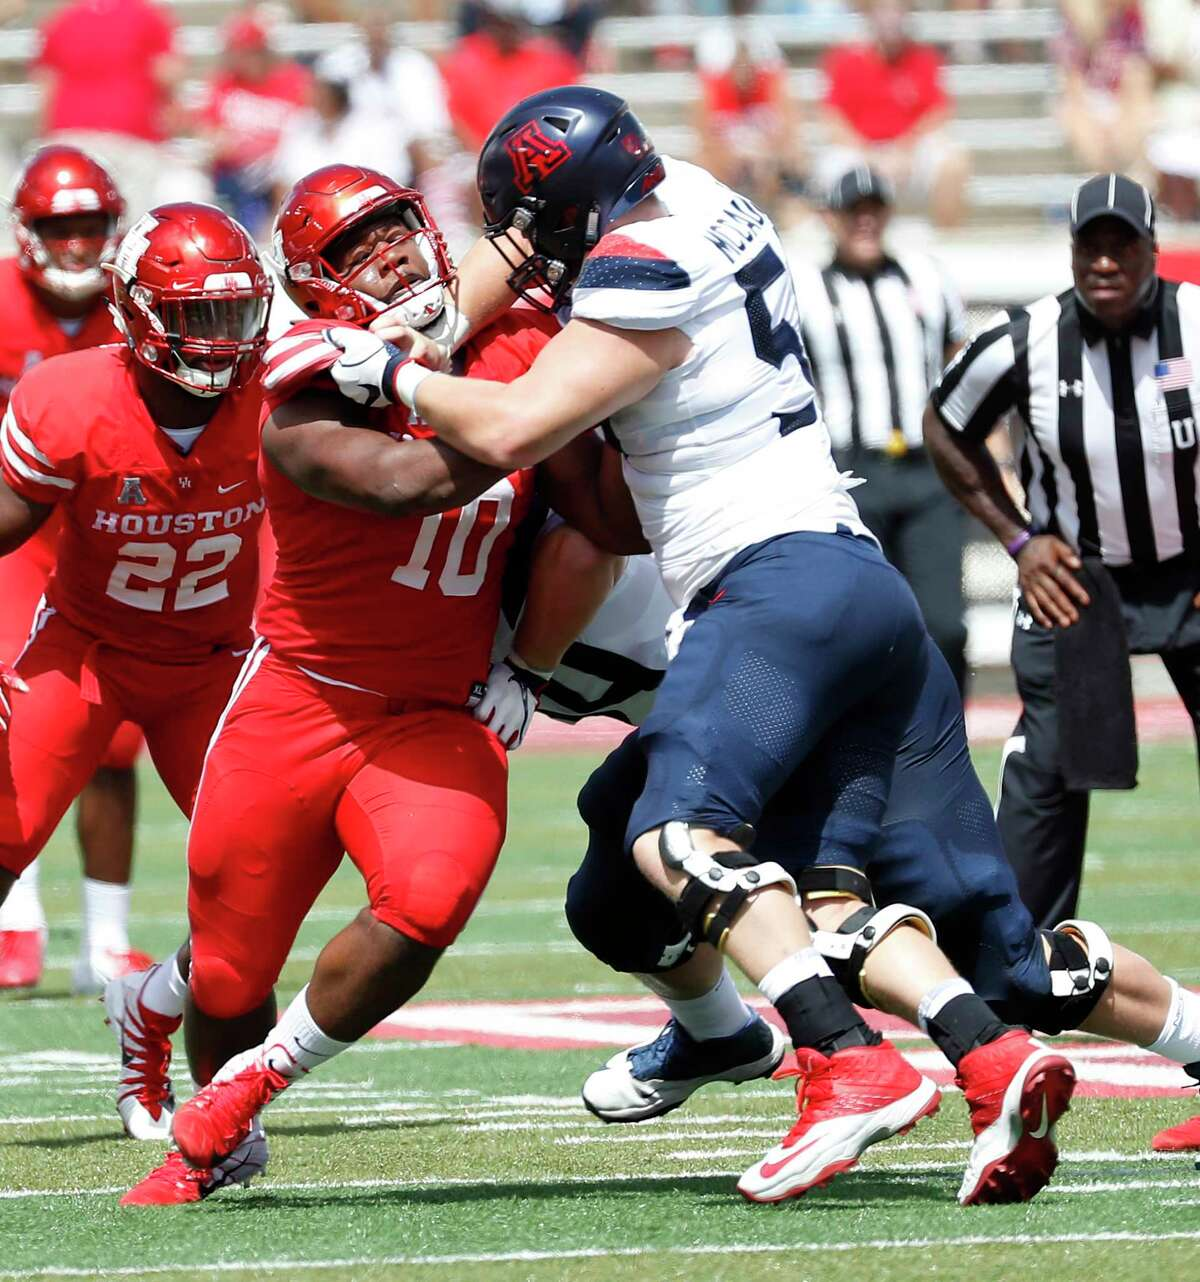 Houston Cougars defensive tackle Ed Oliver (10) works against Arizona Wildcats offensive lineman Josh McCauley (50) during the first half of a college football game at TDECU Stadium, Saturday, September 8, 2018, in Houston.